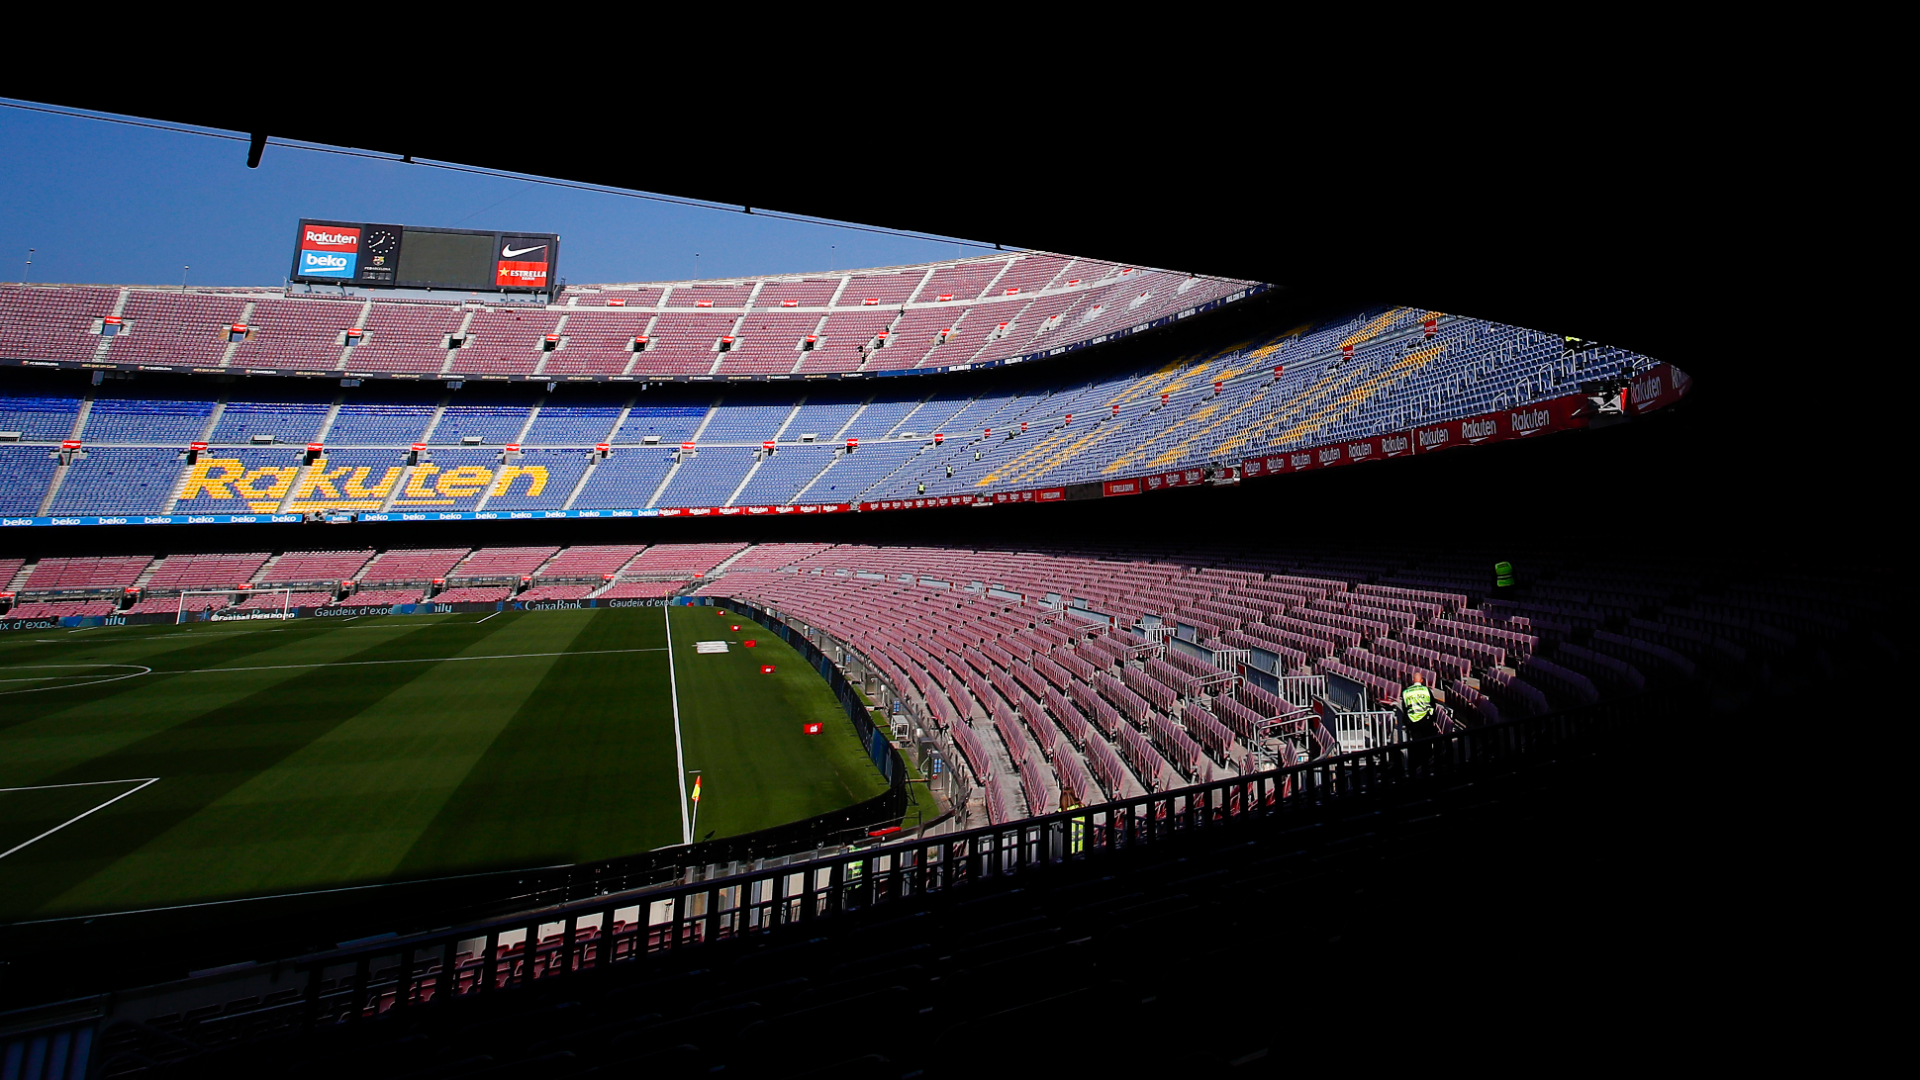 Coronavirus: LaLiga president Tebas hopes to see fans in stadiums before end of the season